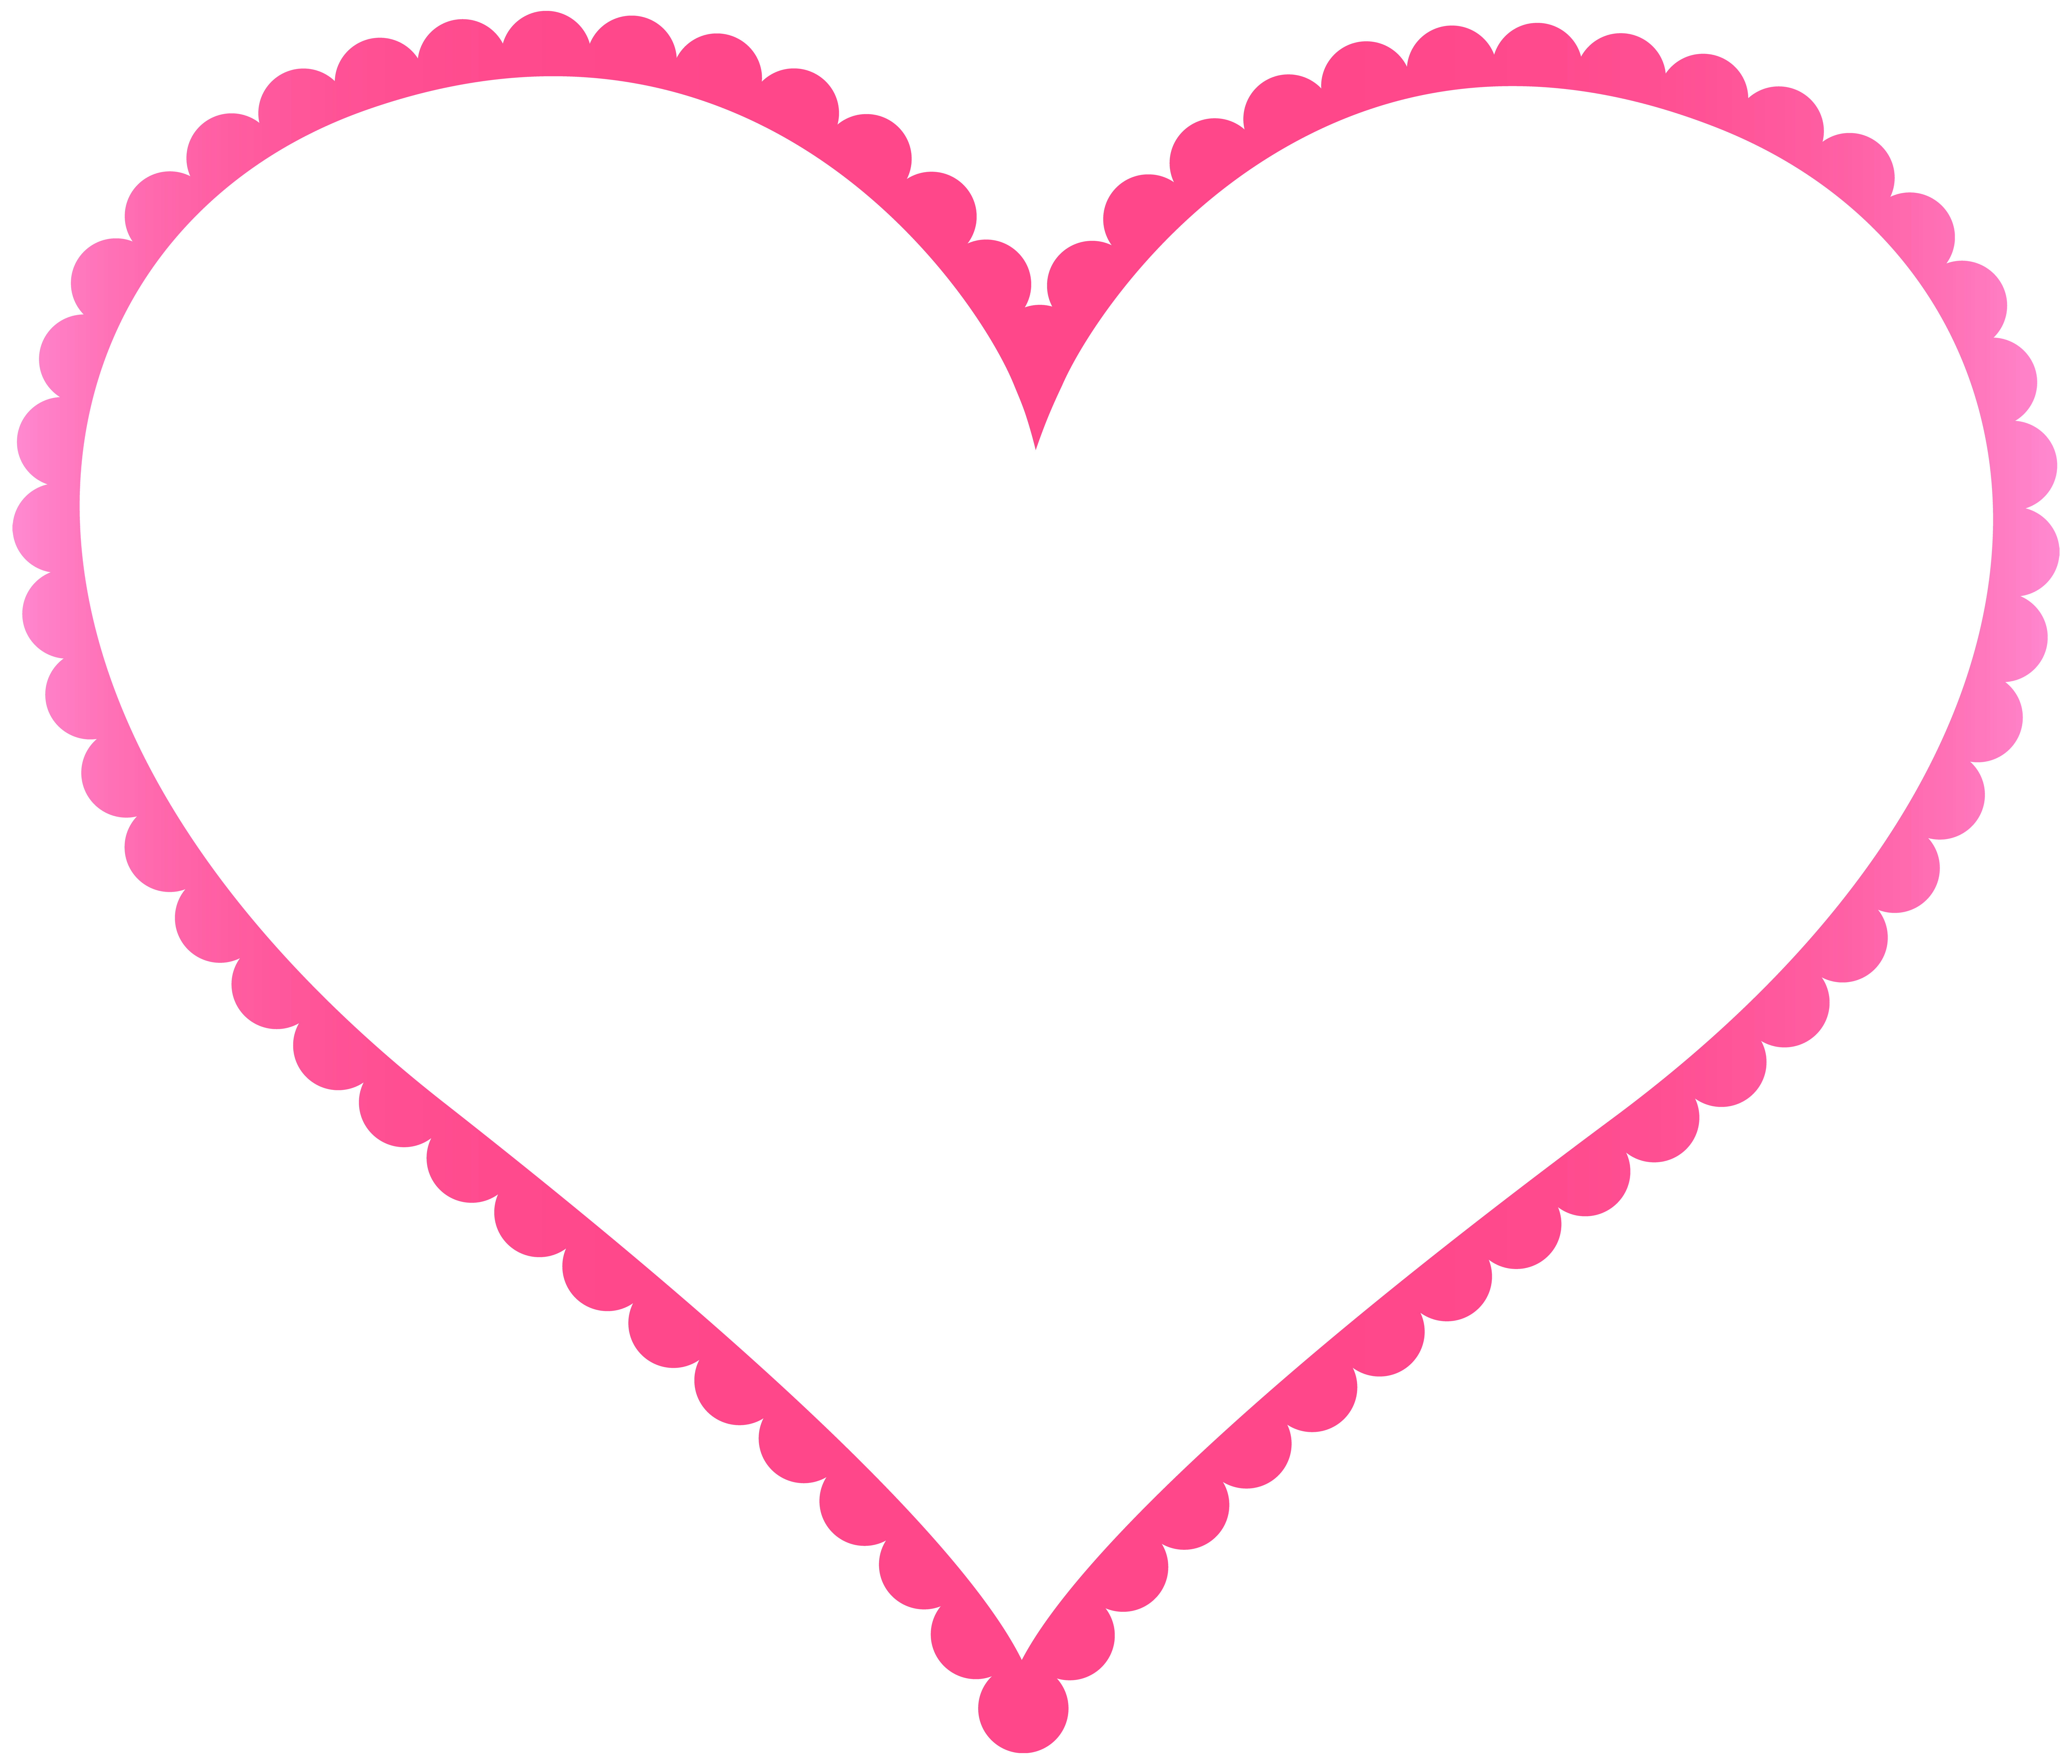 Https Gallery Yopriceville Com Free Clipart Pictures Decorative Elements Png Pink Heart Border Frame Transparent Png Clip Heart Border Free Clip Art Clip Art